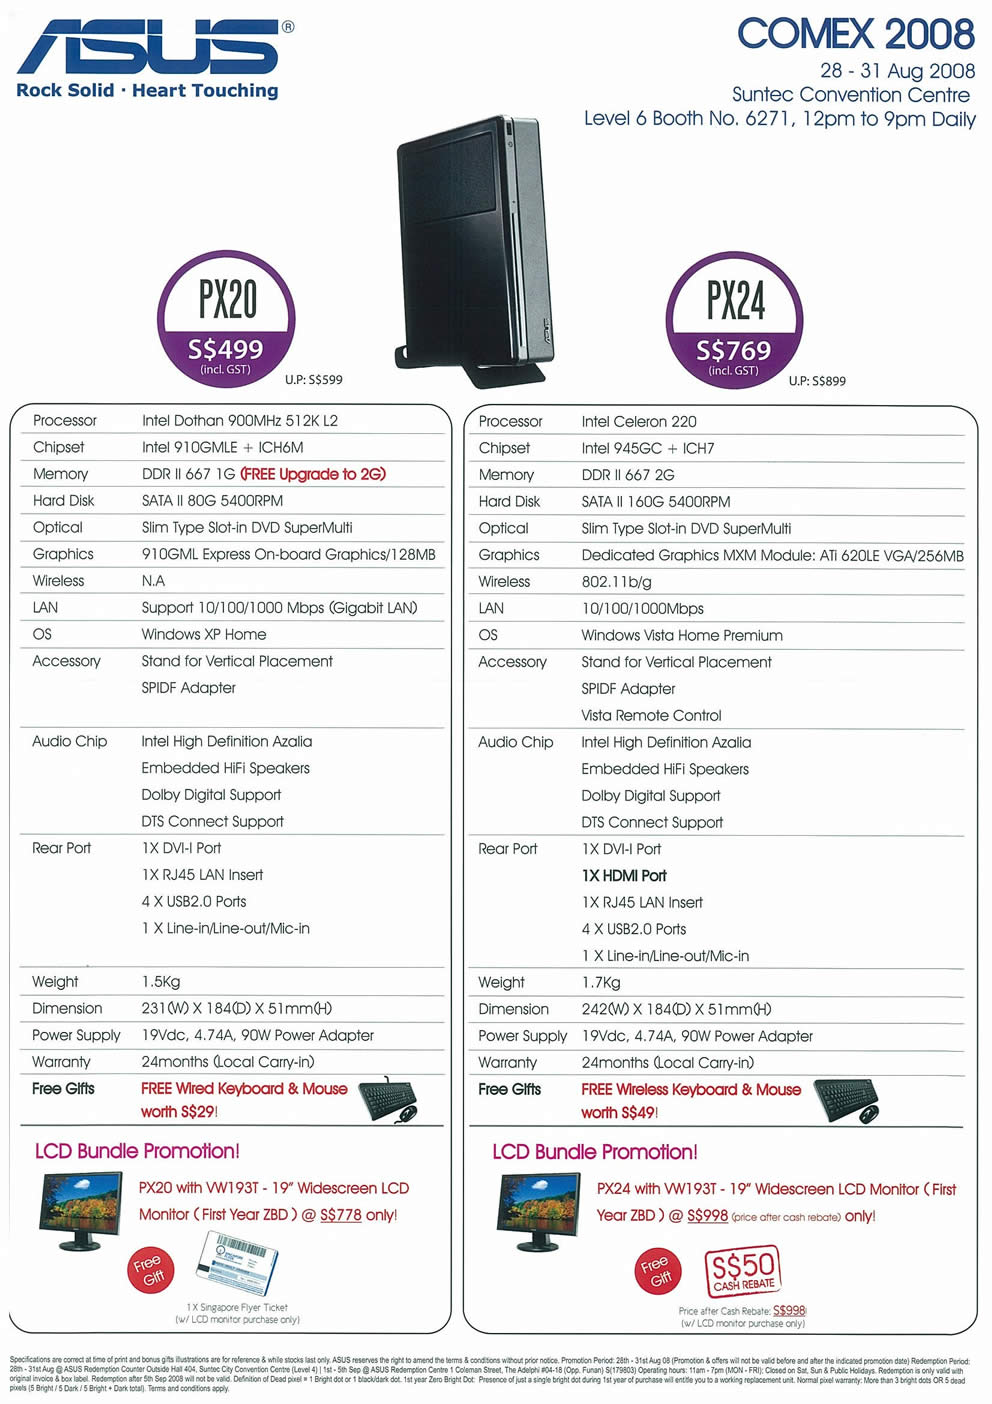 Comex 2008 price list image brochure of ASUS Mini 2L PC Page 2